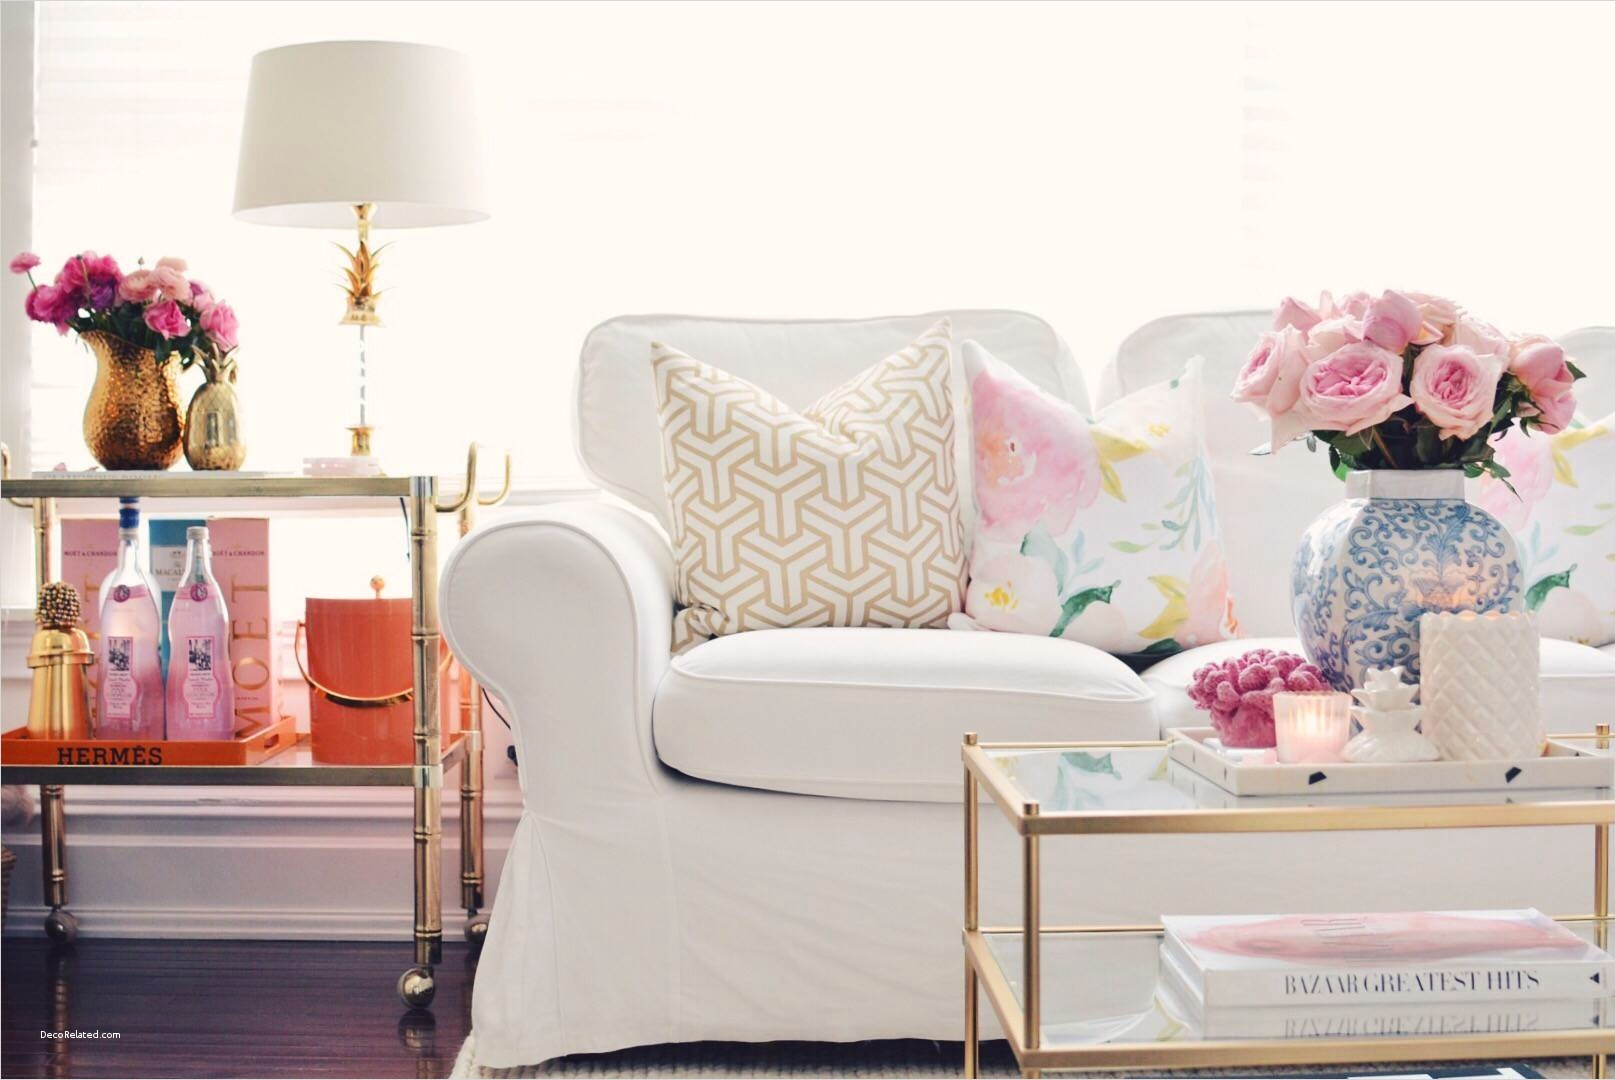 Spring Floral Bedroom Decor 37 Around the House Spring Decor Updates the Pink Dream 6